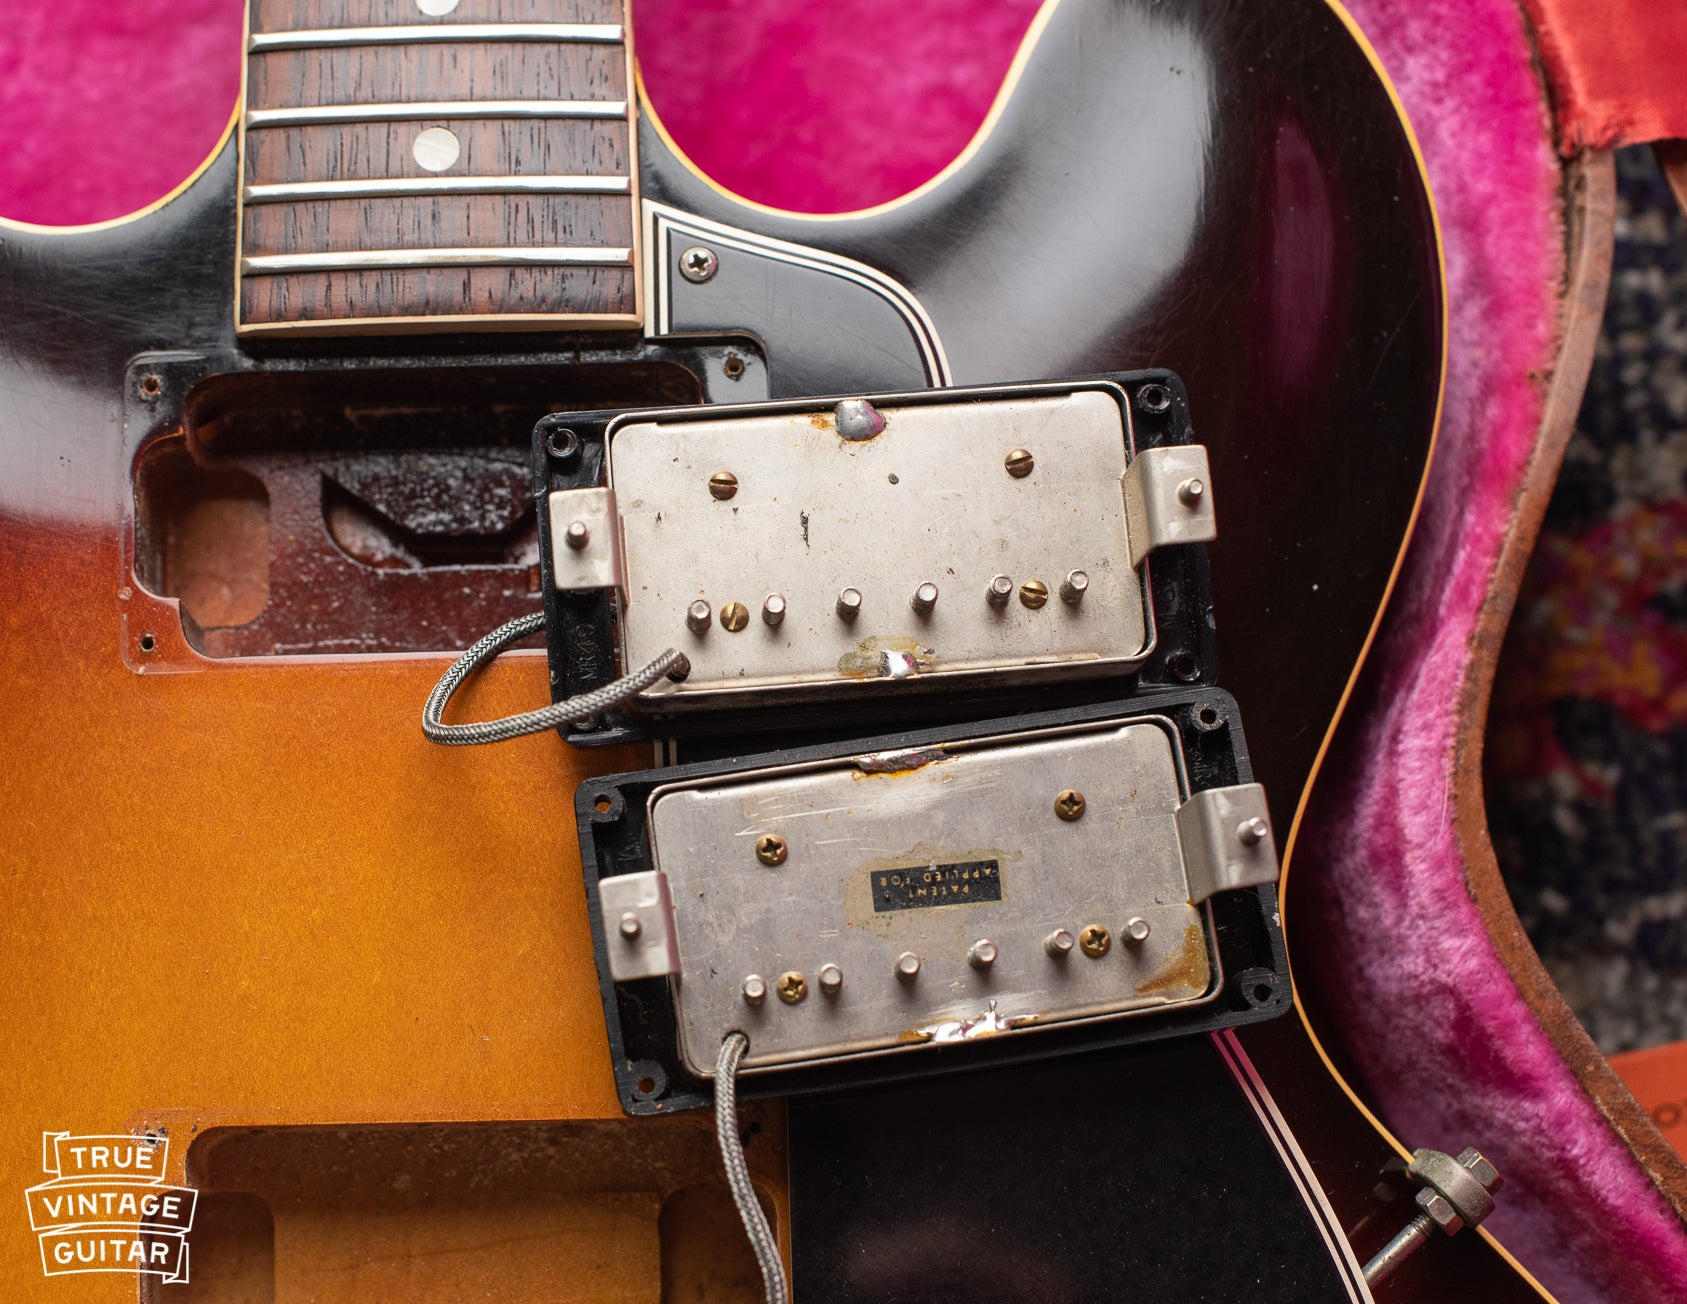 Gibson ES-335 1960 PAF pickups. Neck pickup has no sticker, slot screws, and is out of phase from the bridge pickup.